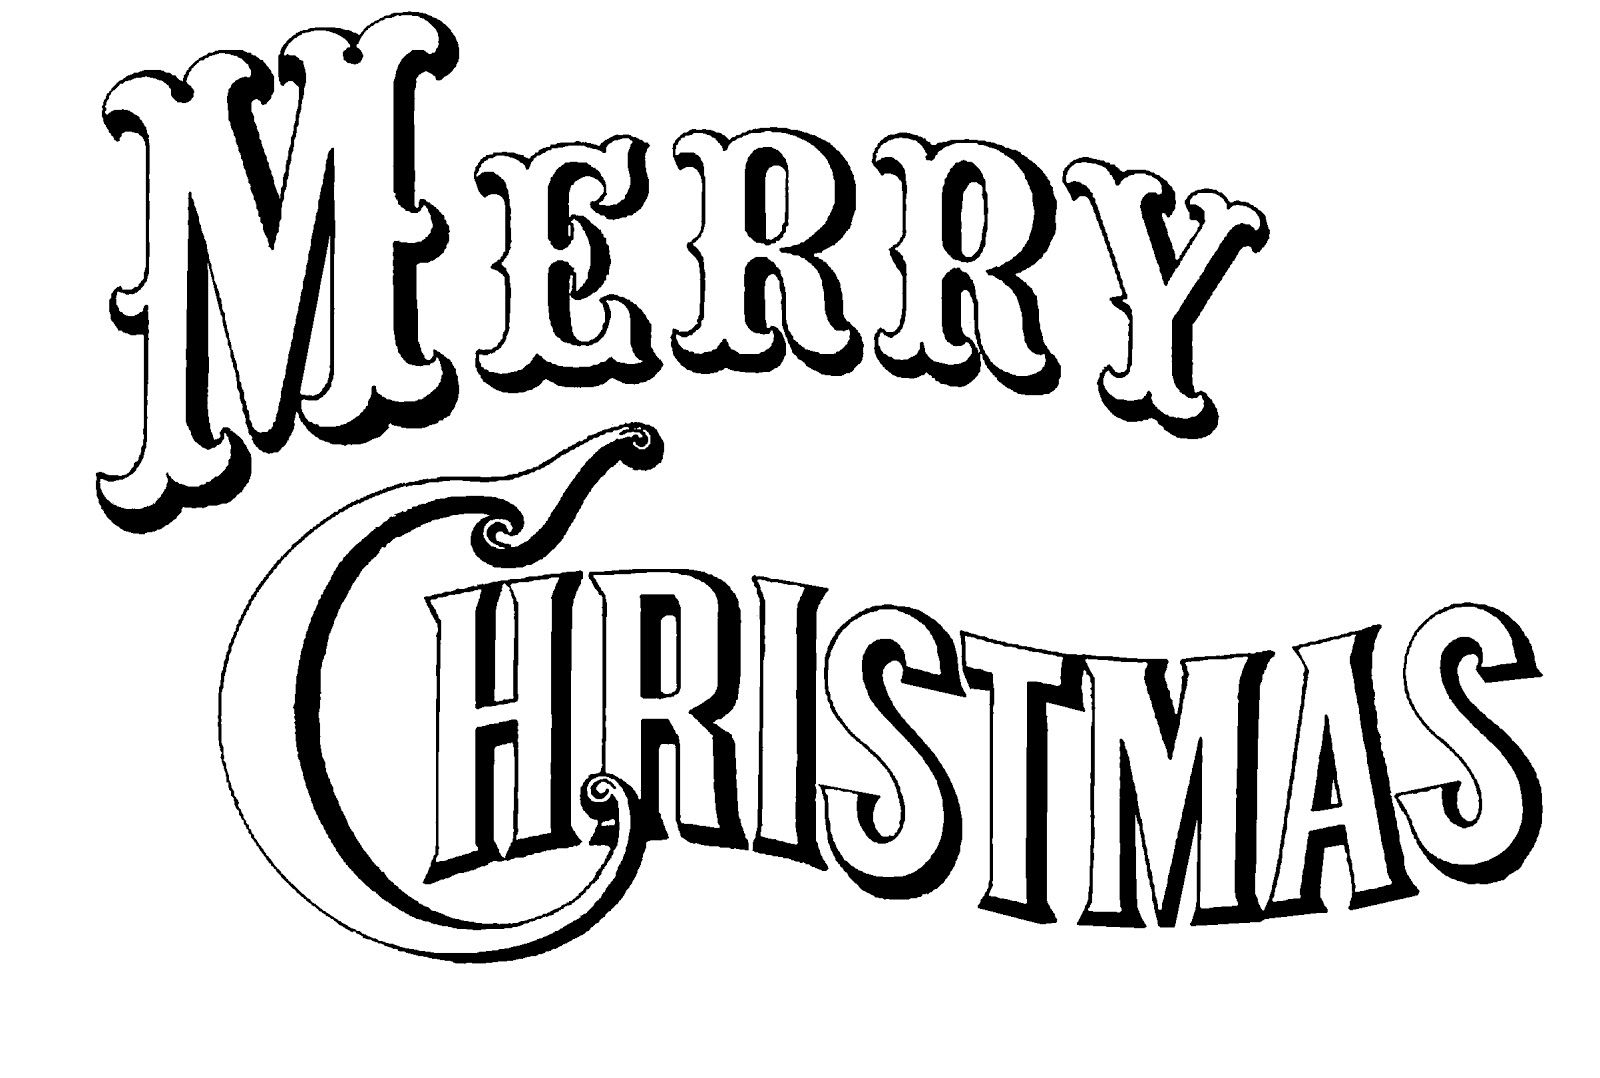 Merry Christmas Images Black And White.Pin On Free Holiday Printables